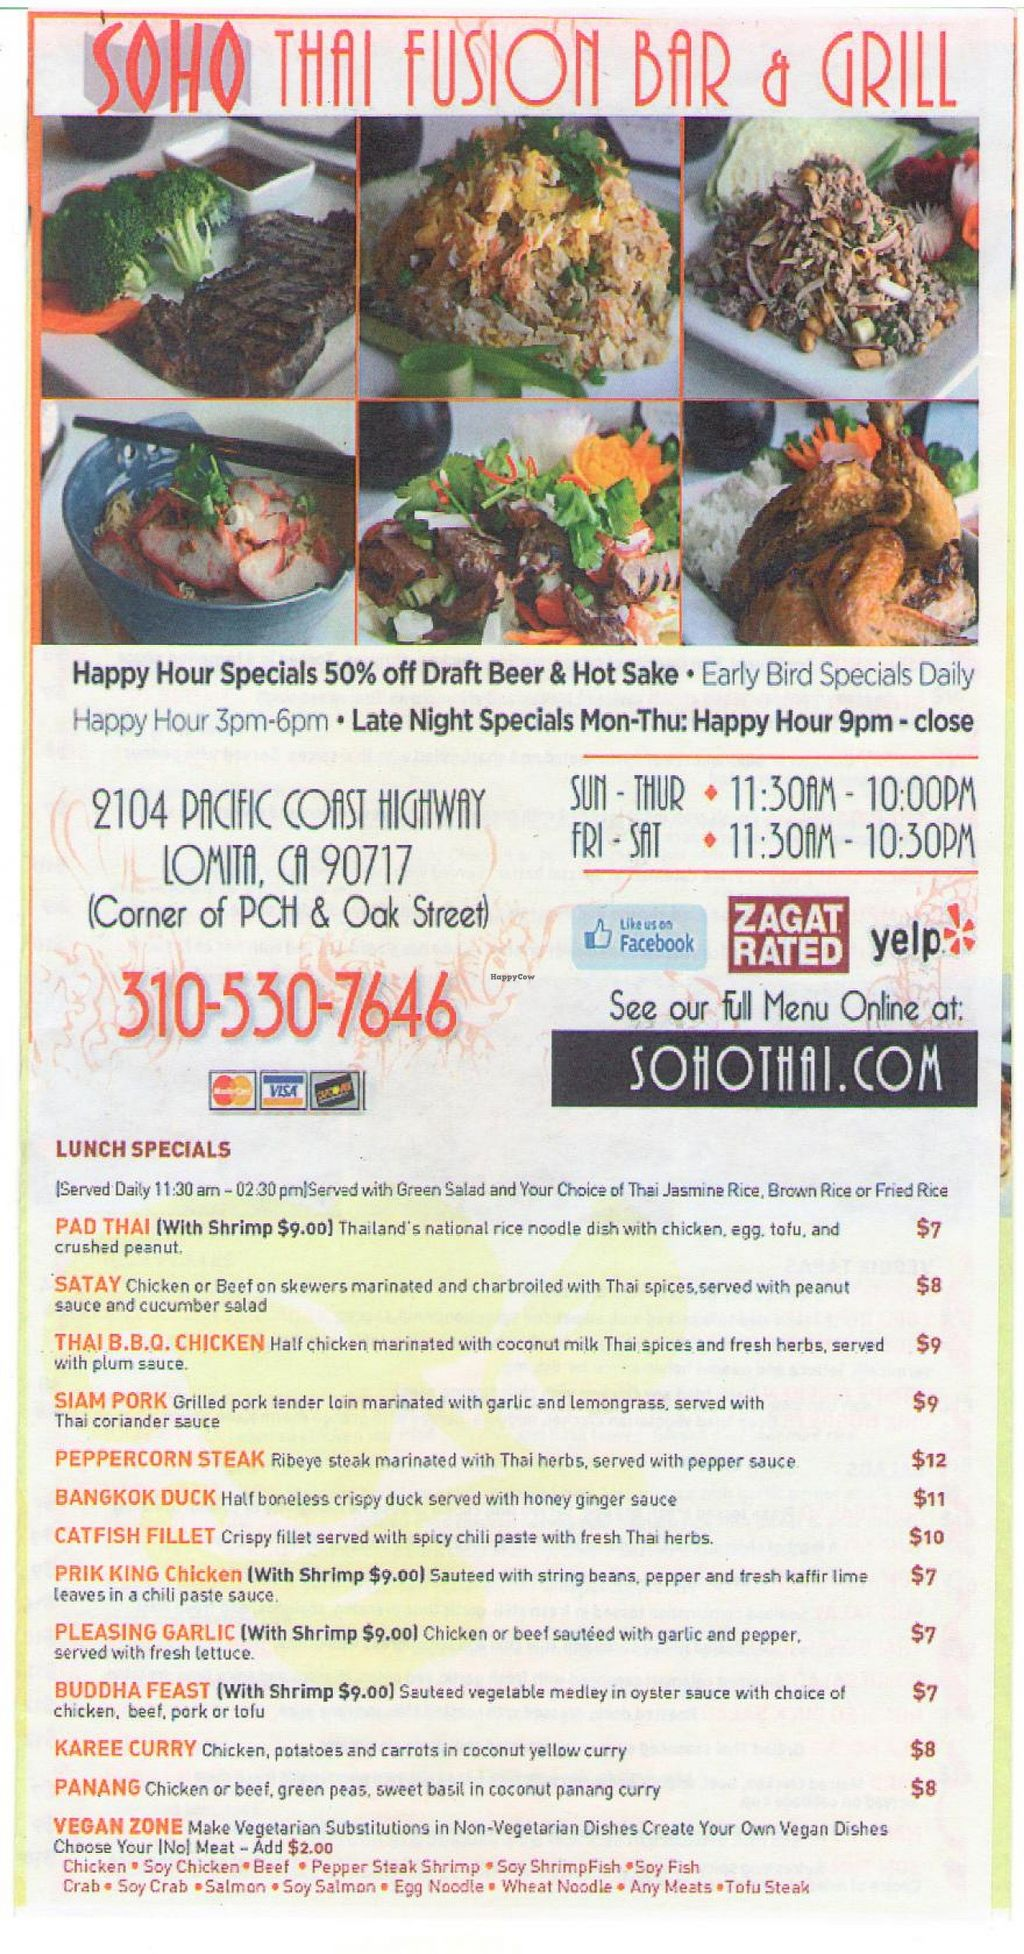 """Photo of CLOSED: Soho Thai Fusion Bar and Grill  by <a href=""""/members/profile/sohothai"""">sohothai</a> <br/>Menu <br/> September 21, 2015  - <a href='/contact/abuse/image/15701/118679'>Report</a>"""